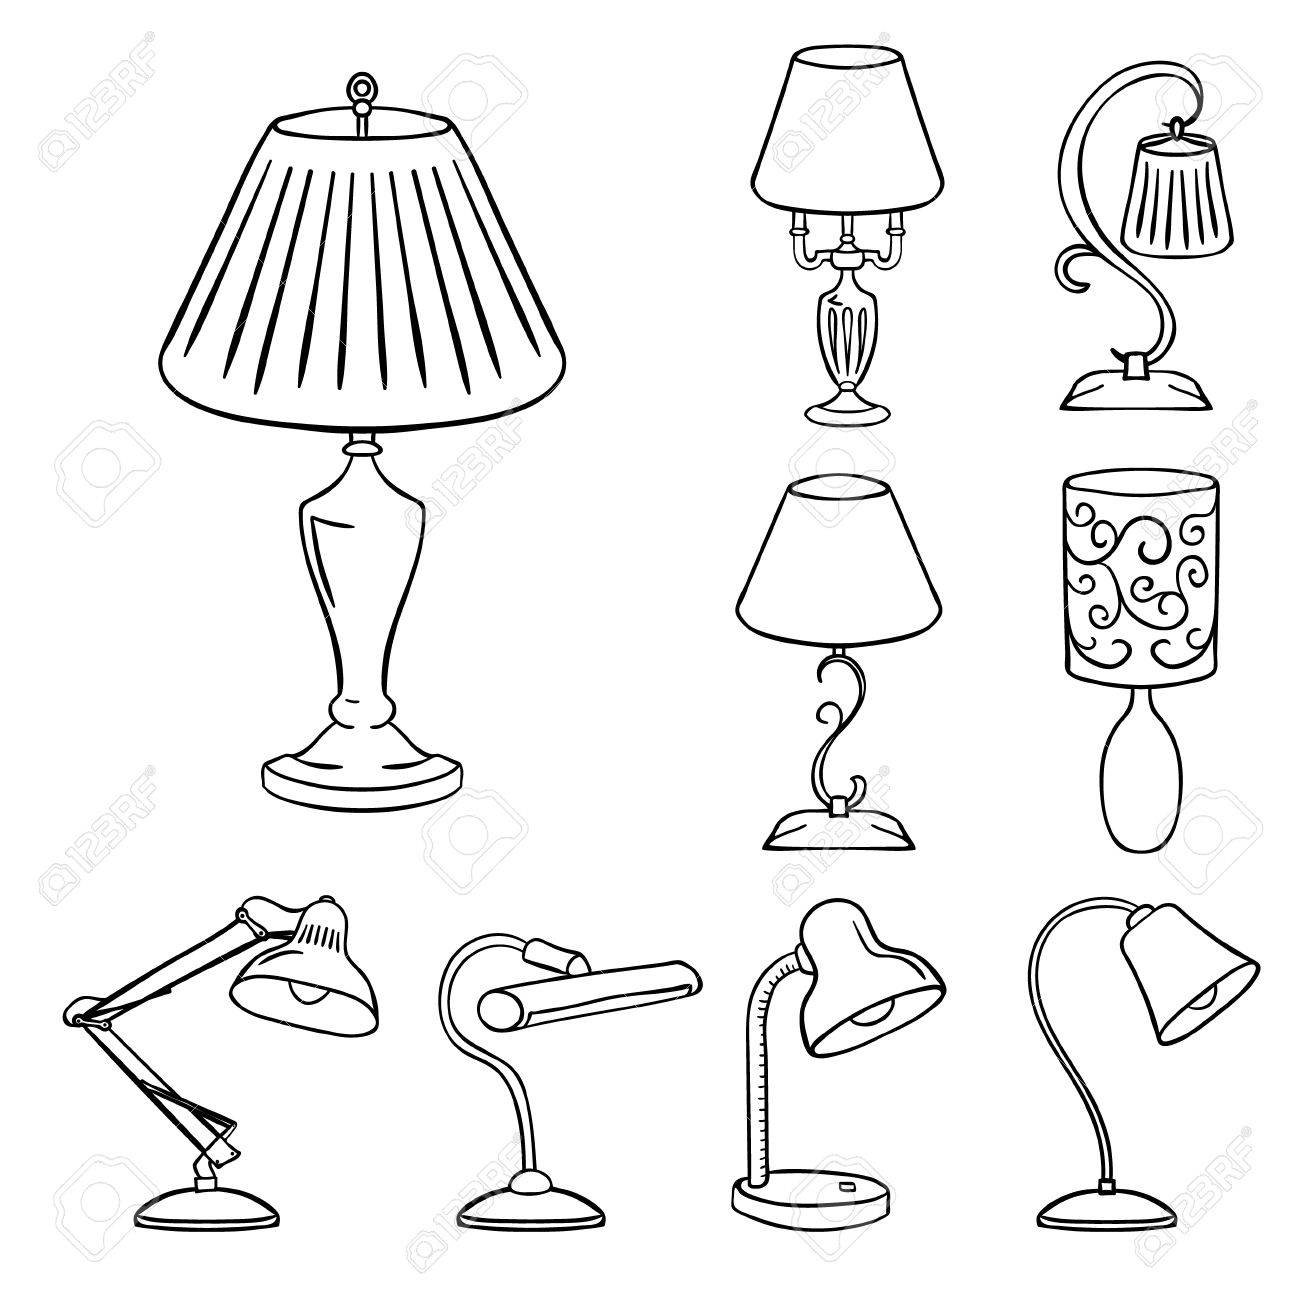 Set Of Sketched Table Lamps With Lampshades Vector Illustration Royalty Free Cliparts Vectors And Stock Illustration Image 52347476